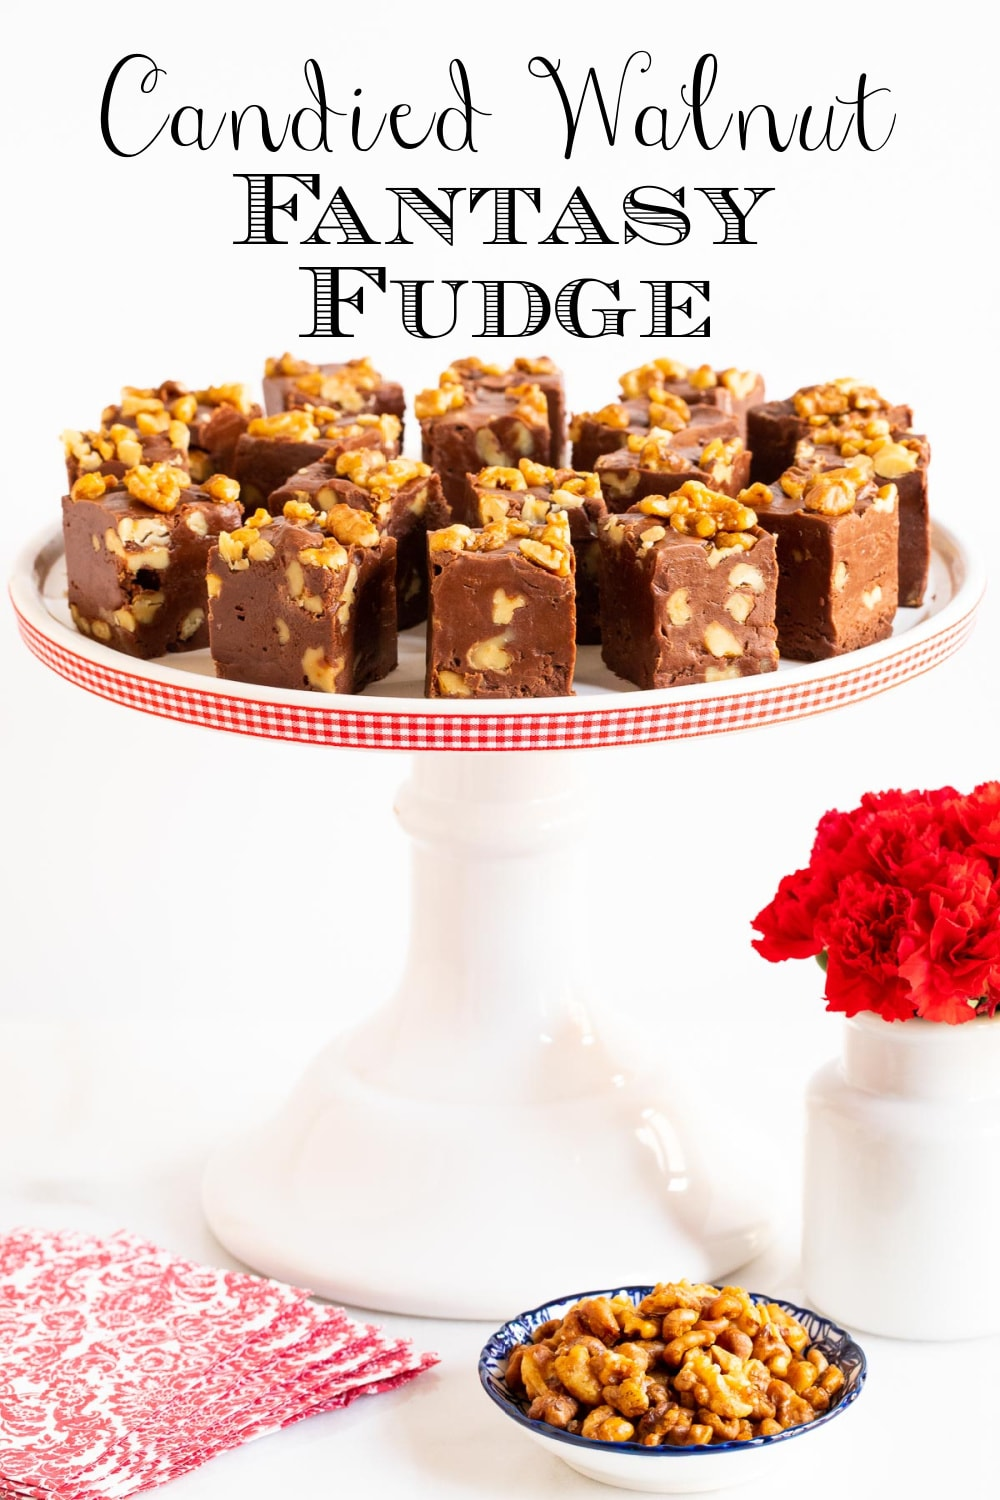 Candied Walnut Fantasy Fudge